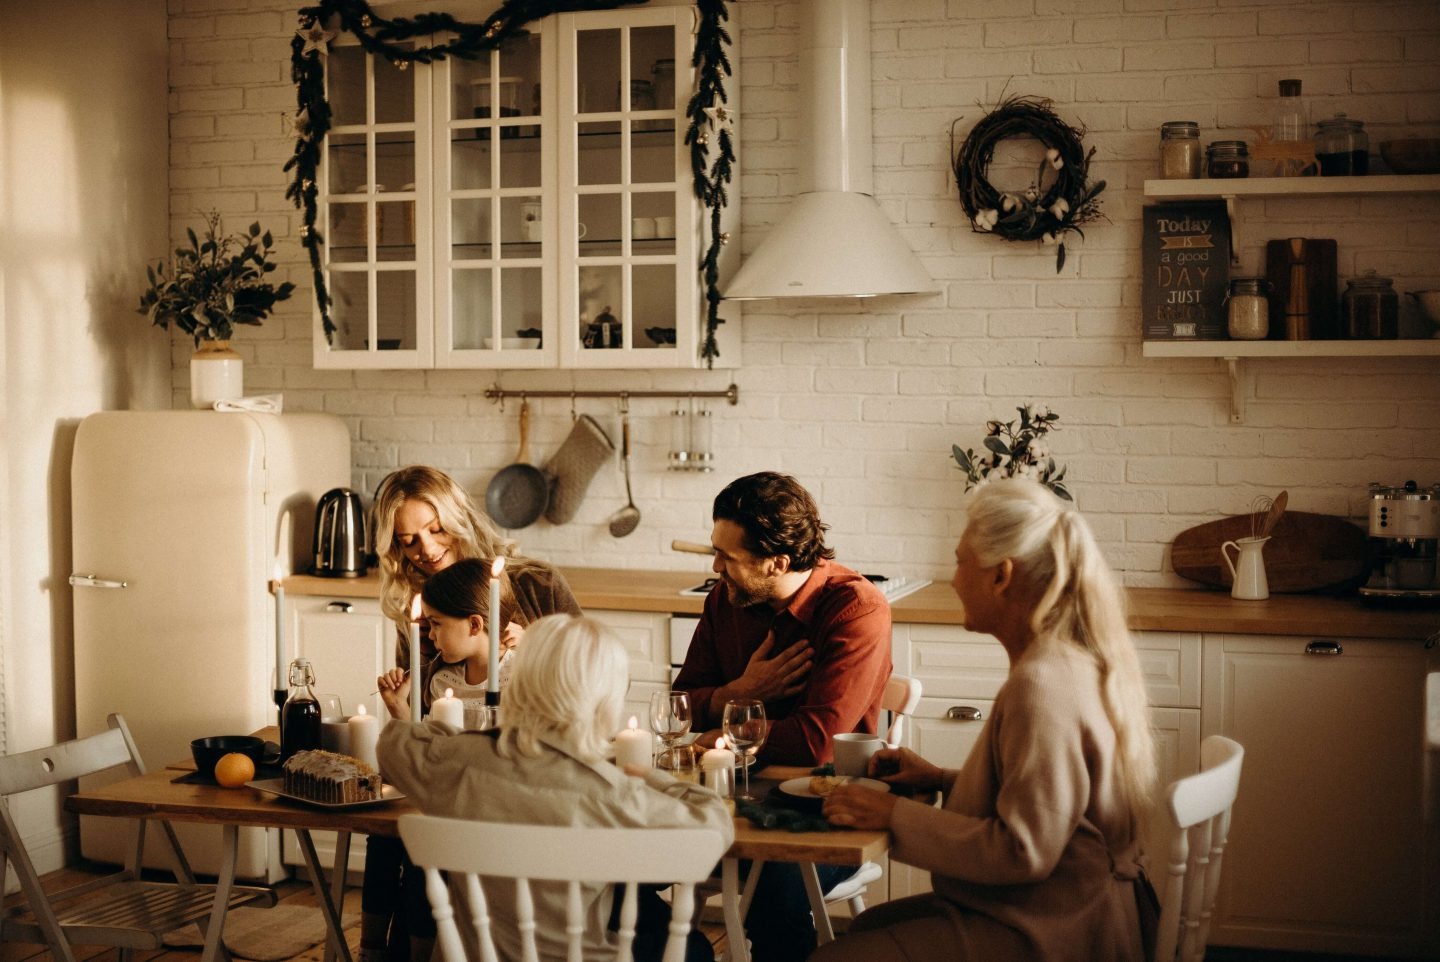 A family sat at a dining table in a kitchen enjoying food and drink